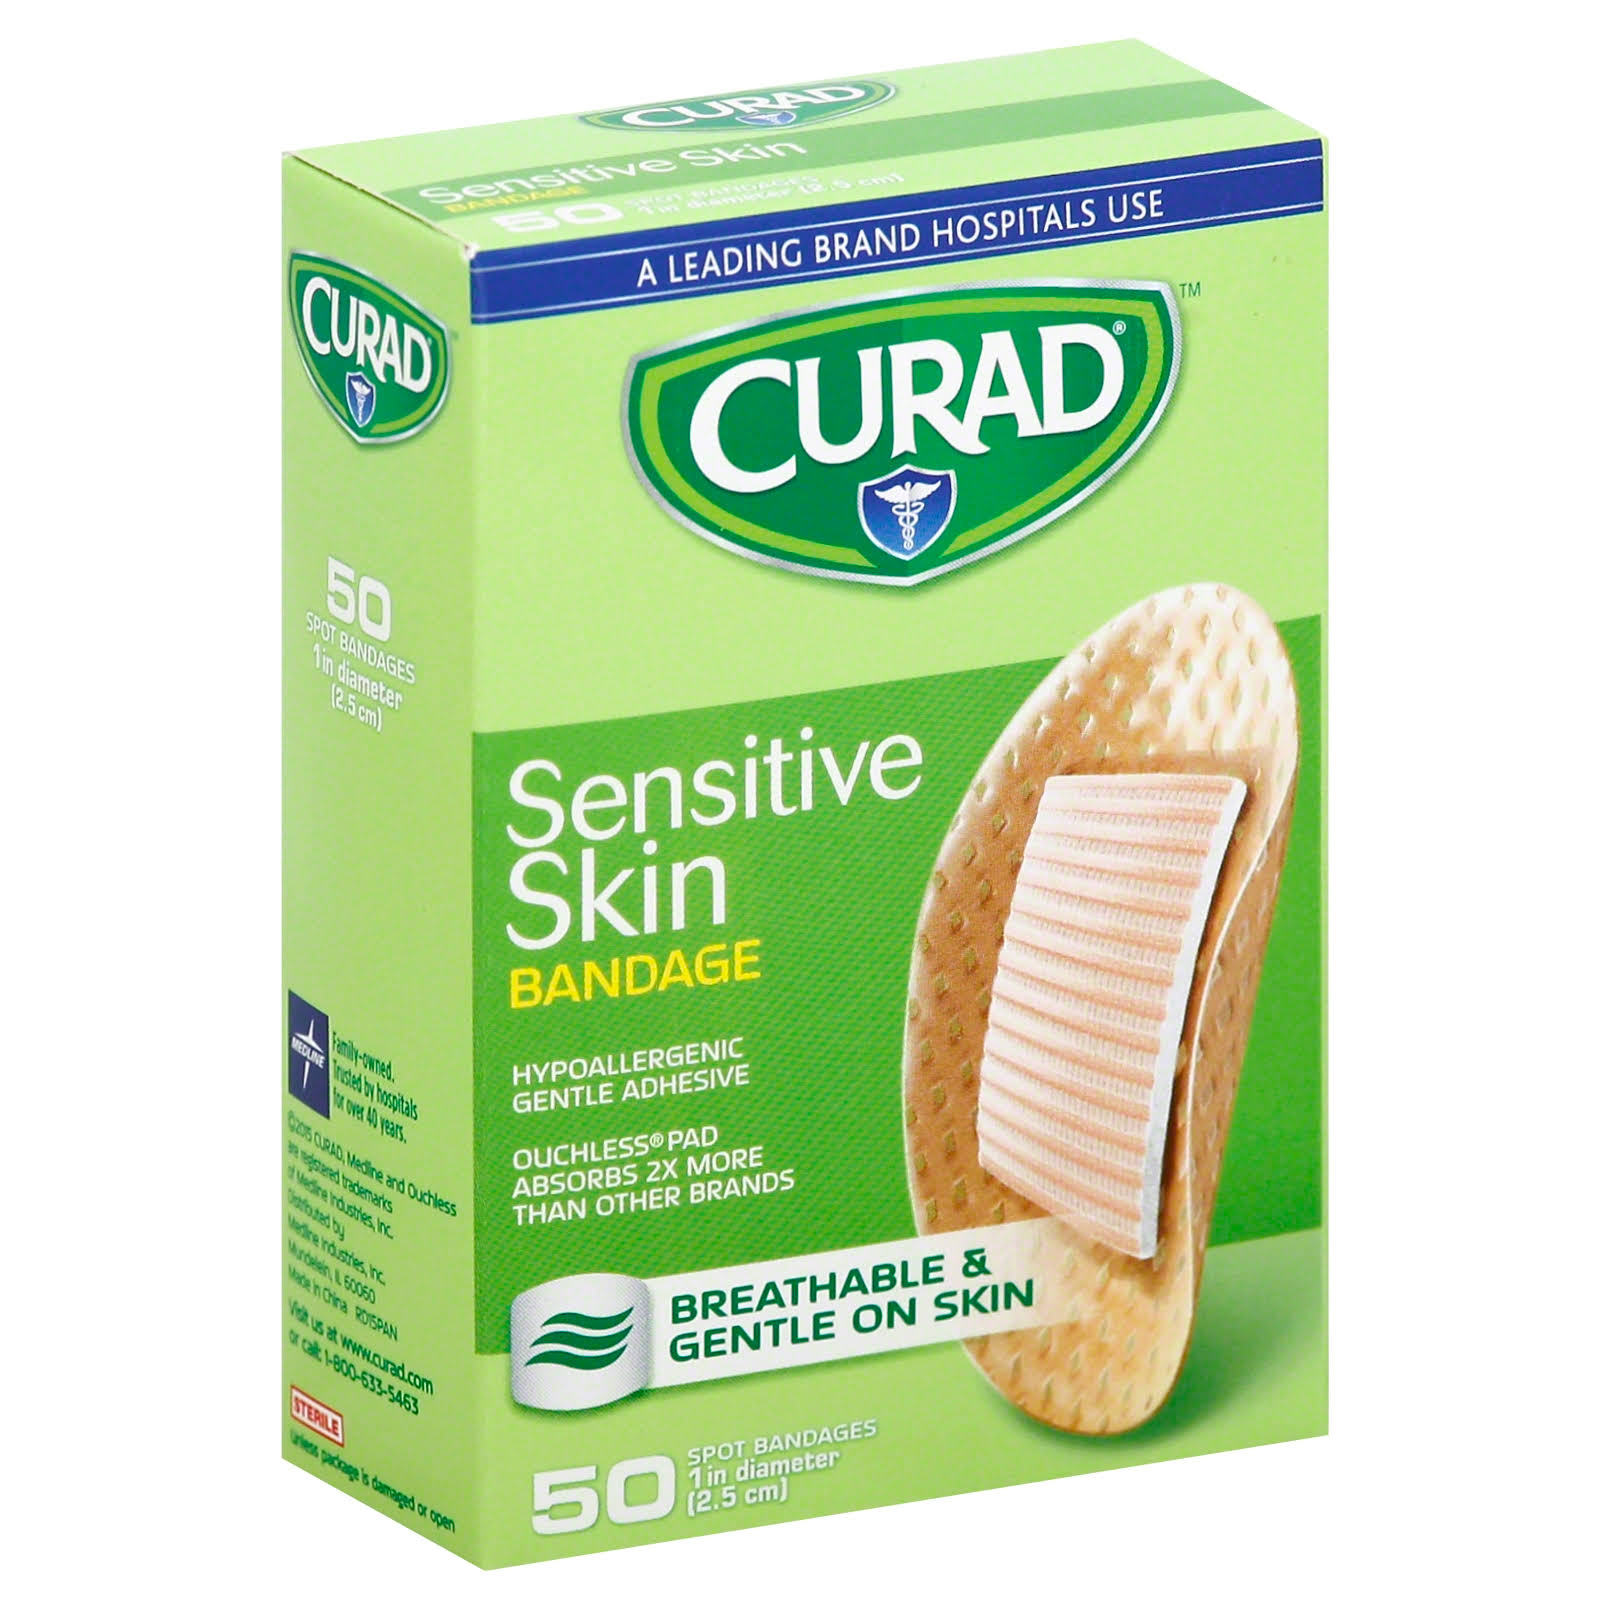 Curad Sensitive Skin Bandages - 50 Bandages, 25mm